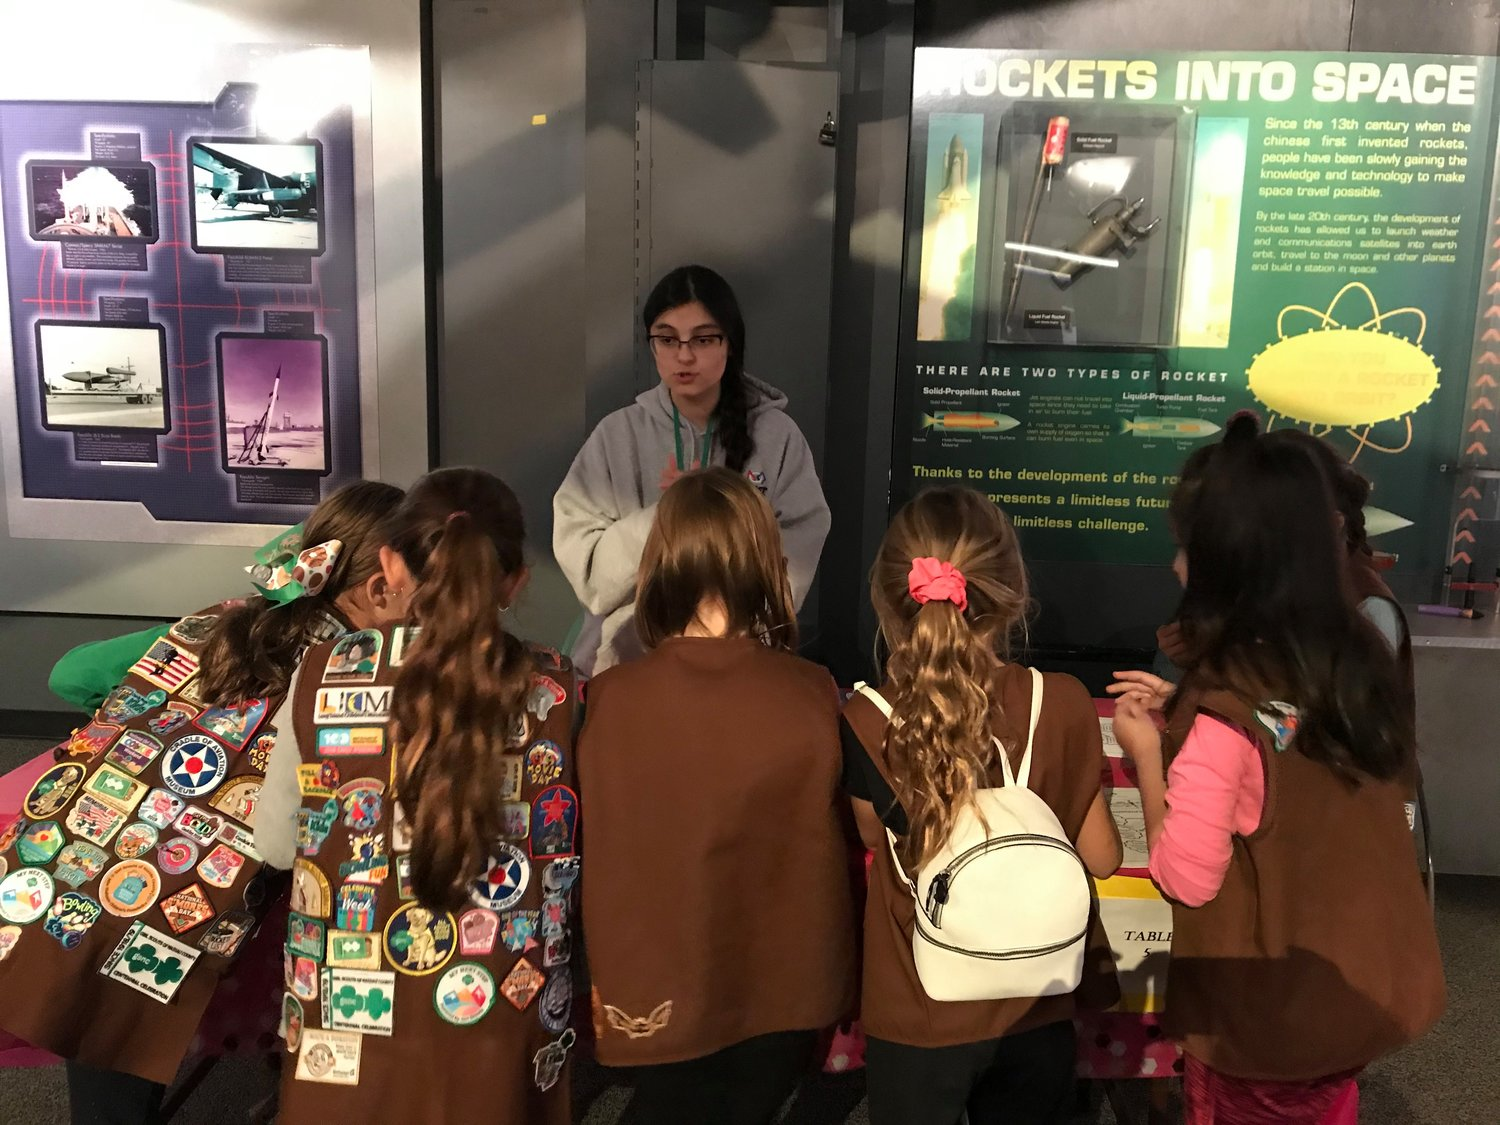 Elana Pocress, 17, of Oceanside, taught lessons in STEM to a group of Girl Scouts at the Cradle of Aviation museum in Garden City.